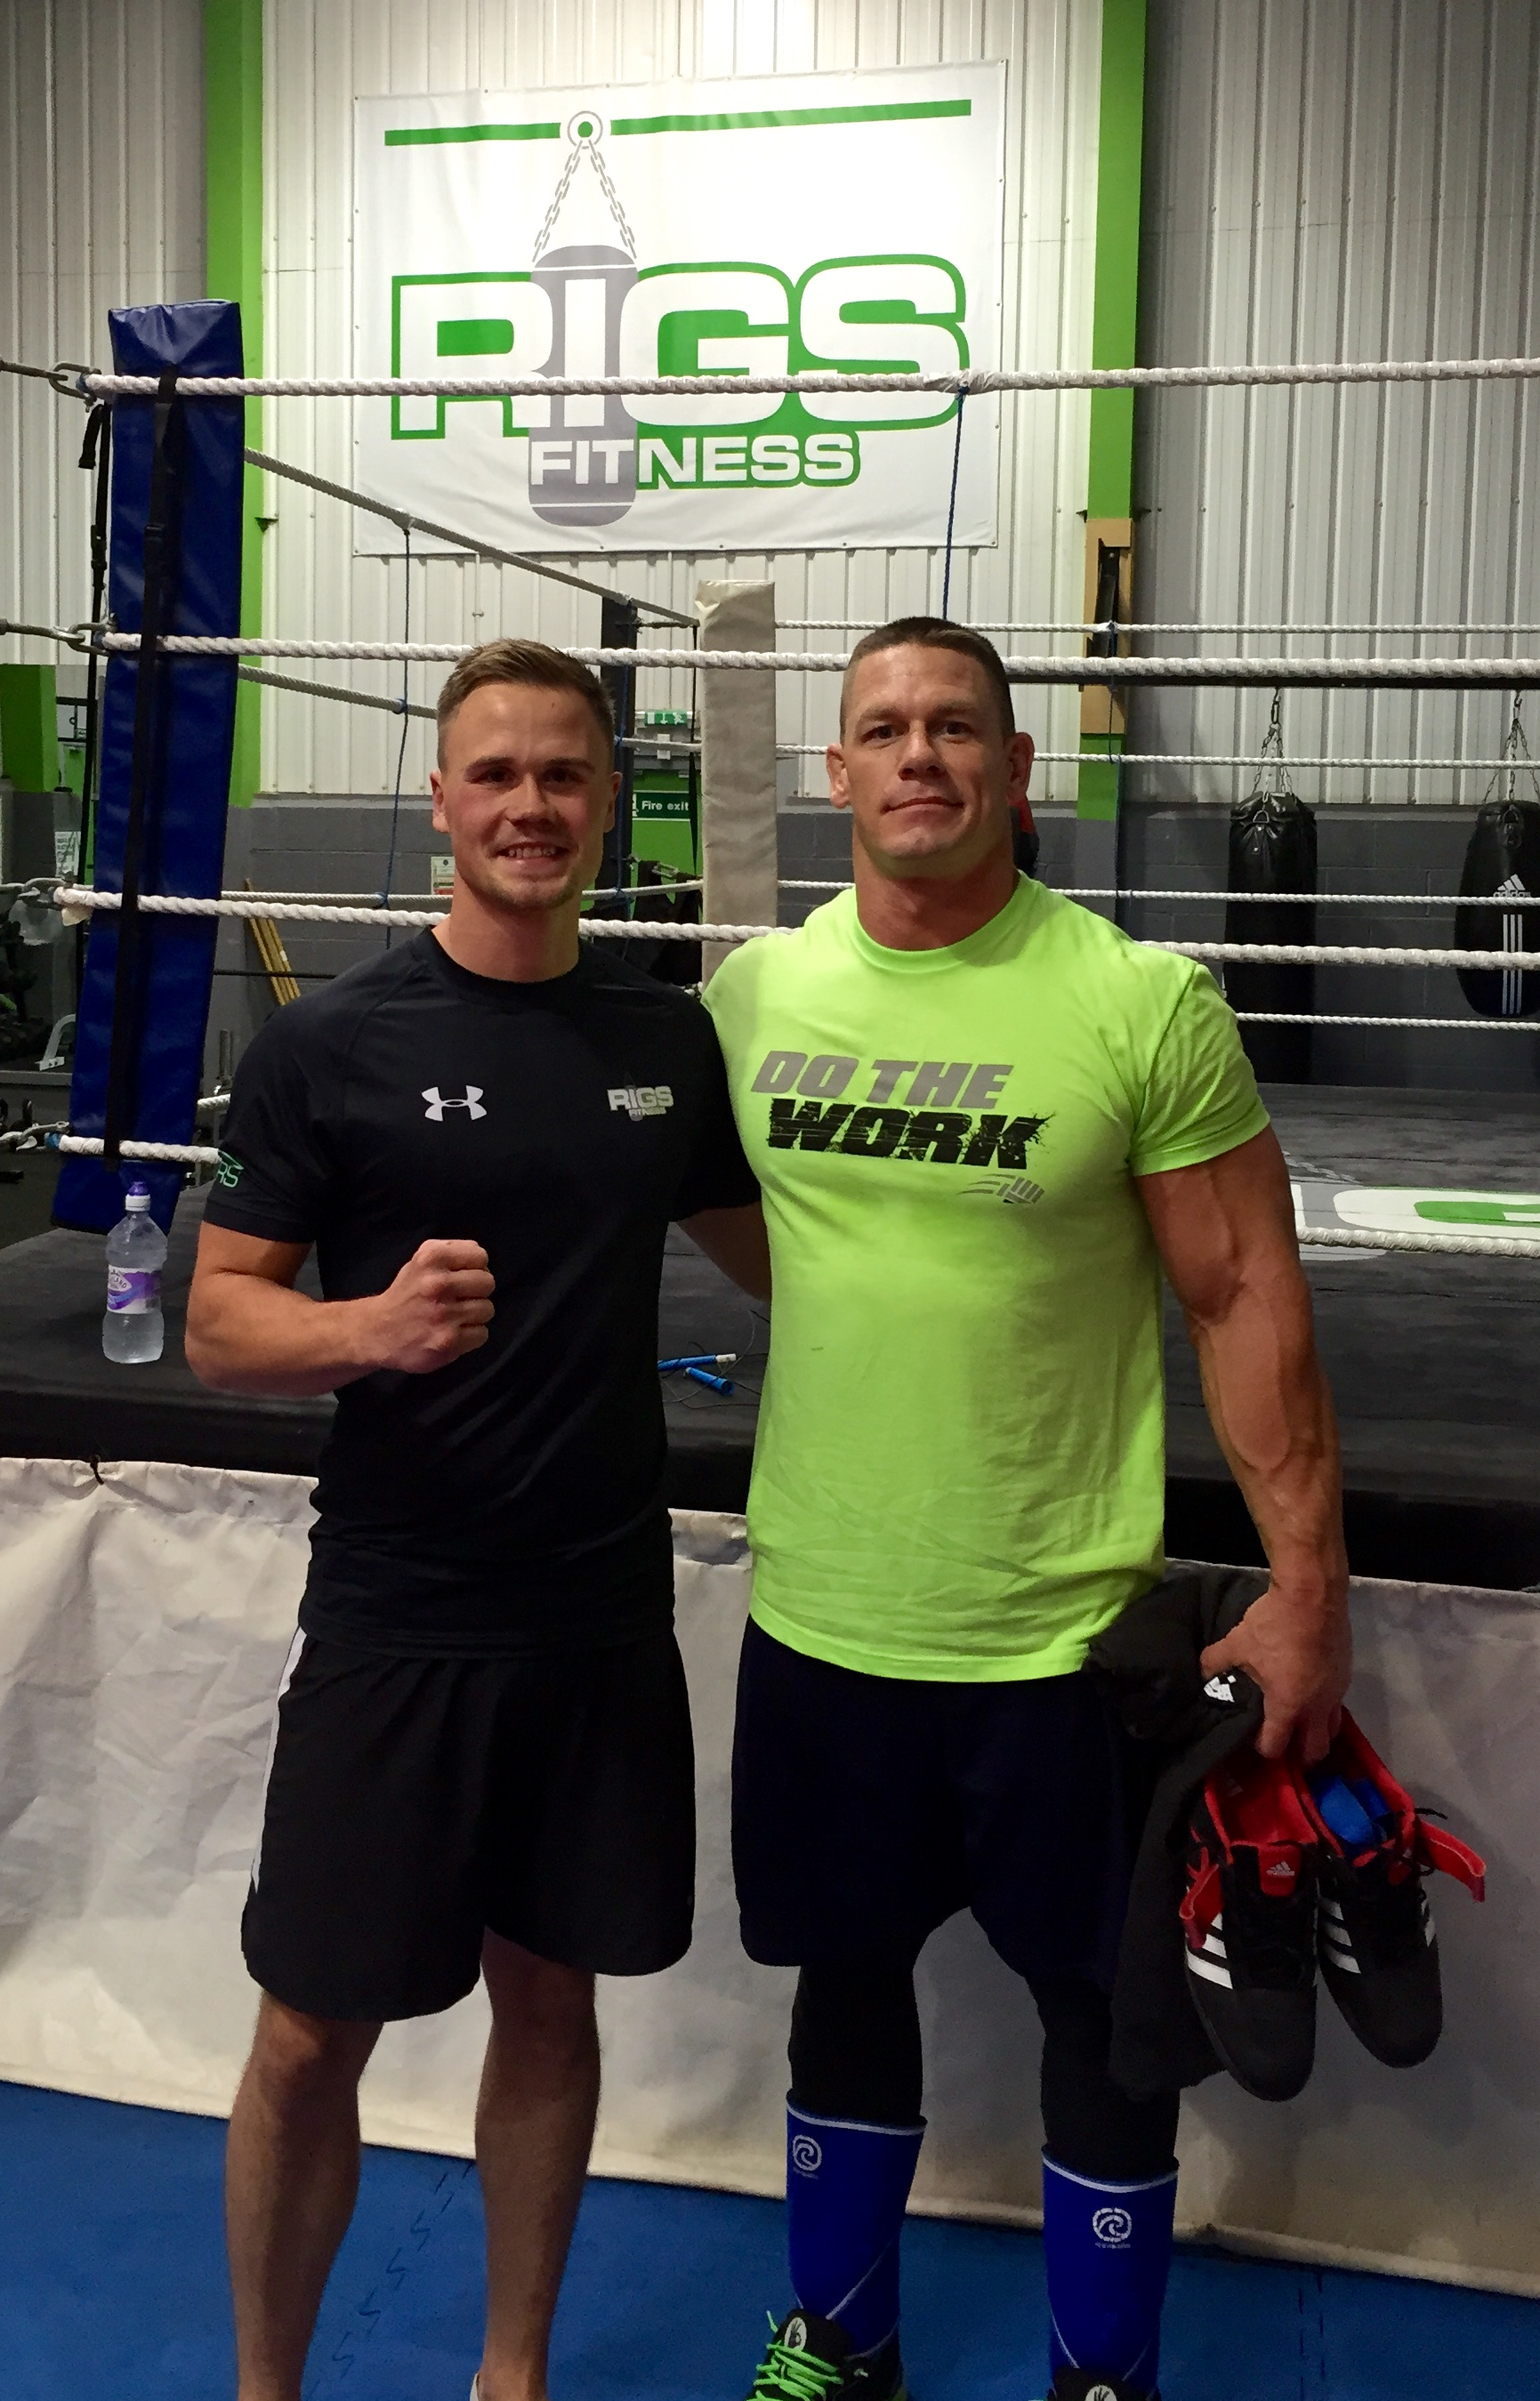 John Cena & Rigs Fitness Owner Sam Smith at the Birmingham Gym